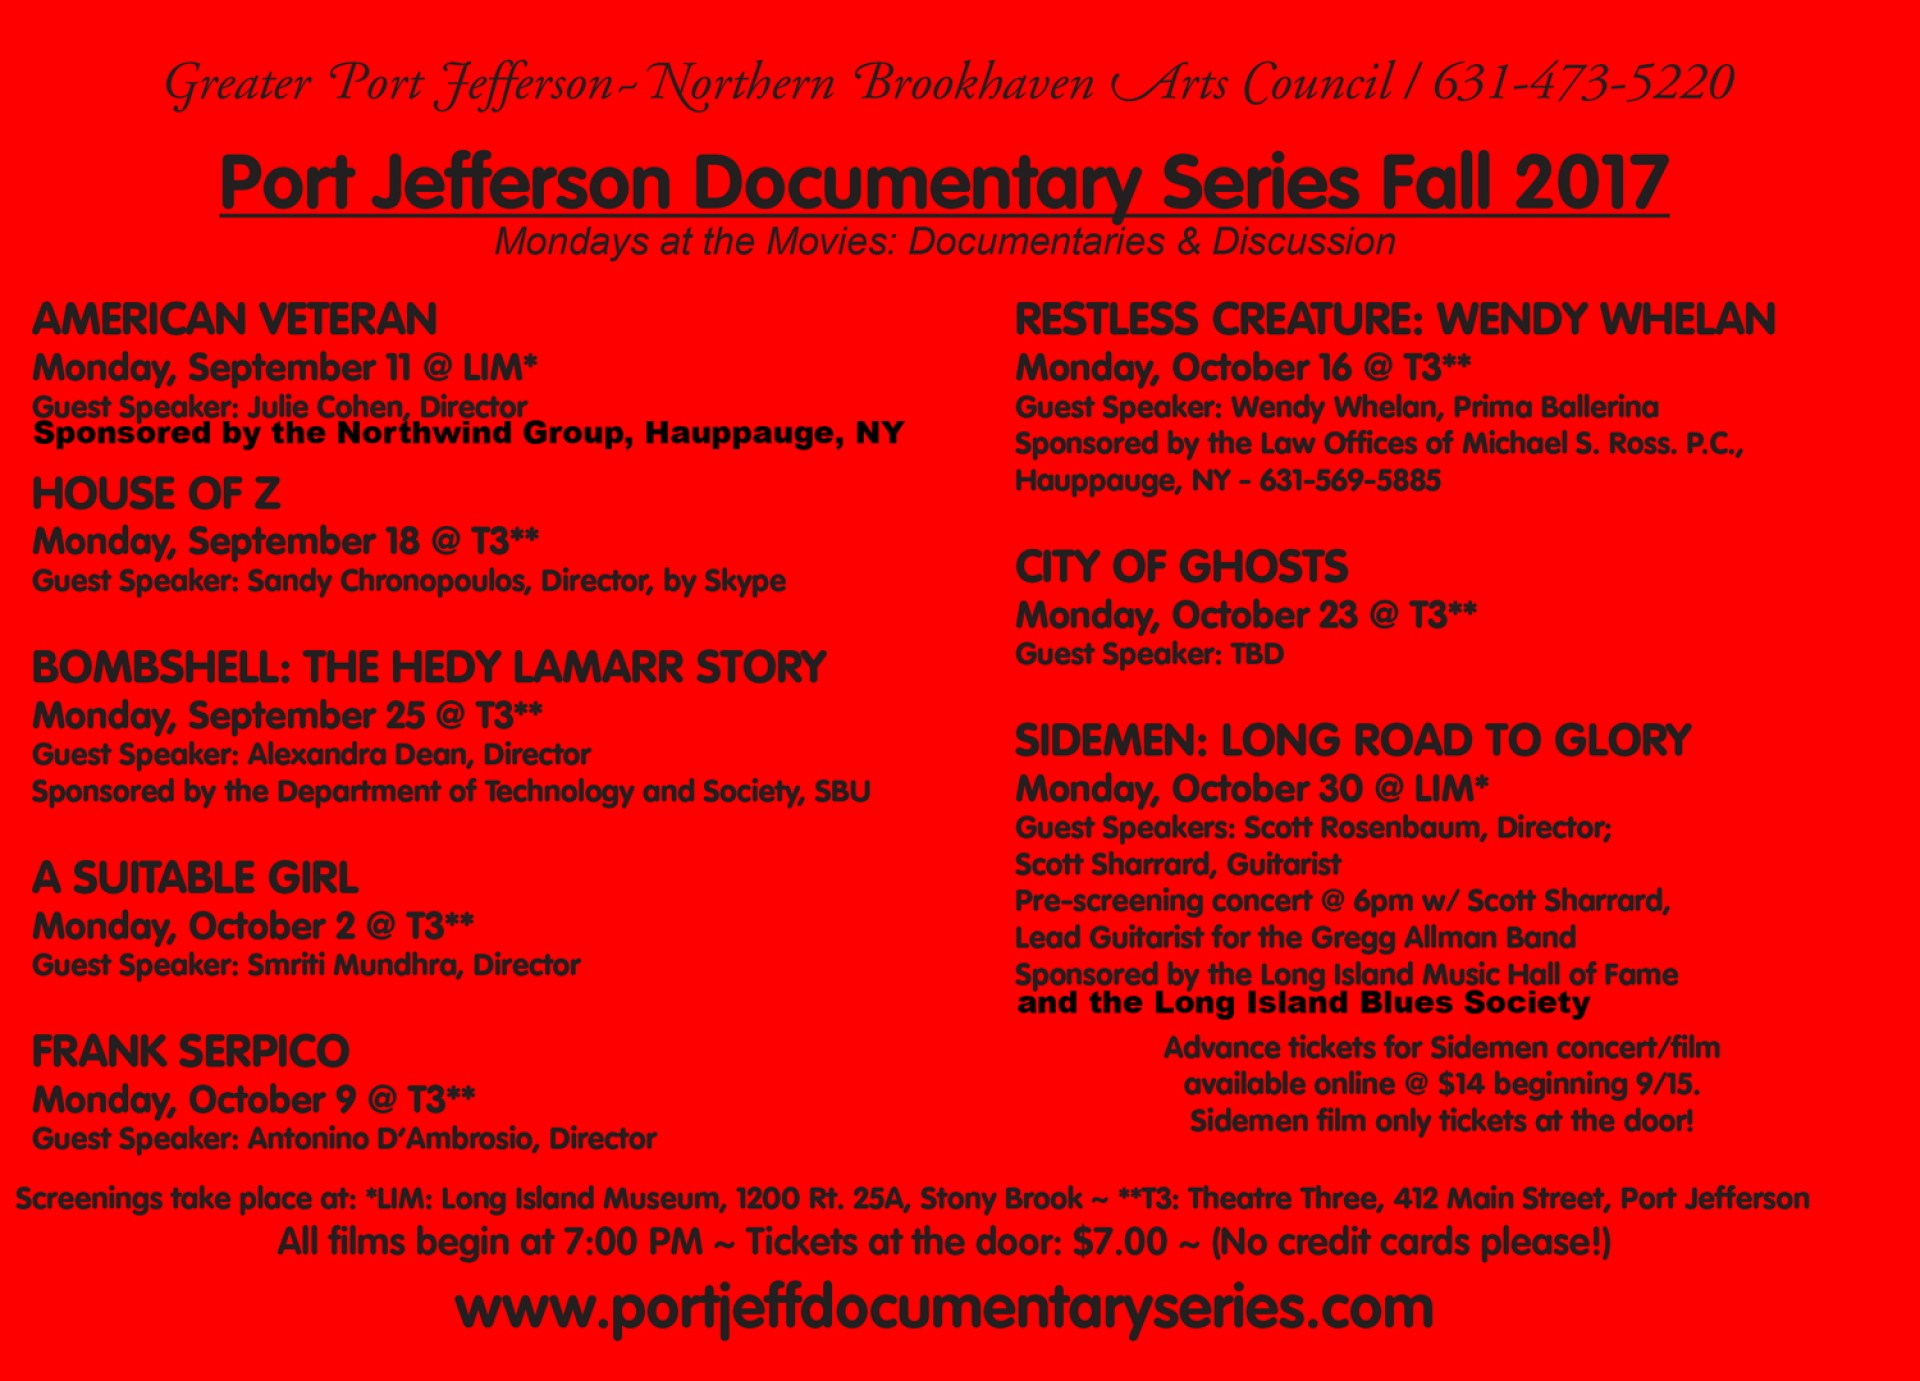 Fall 2017 Red Card port jeff documentary series